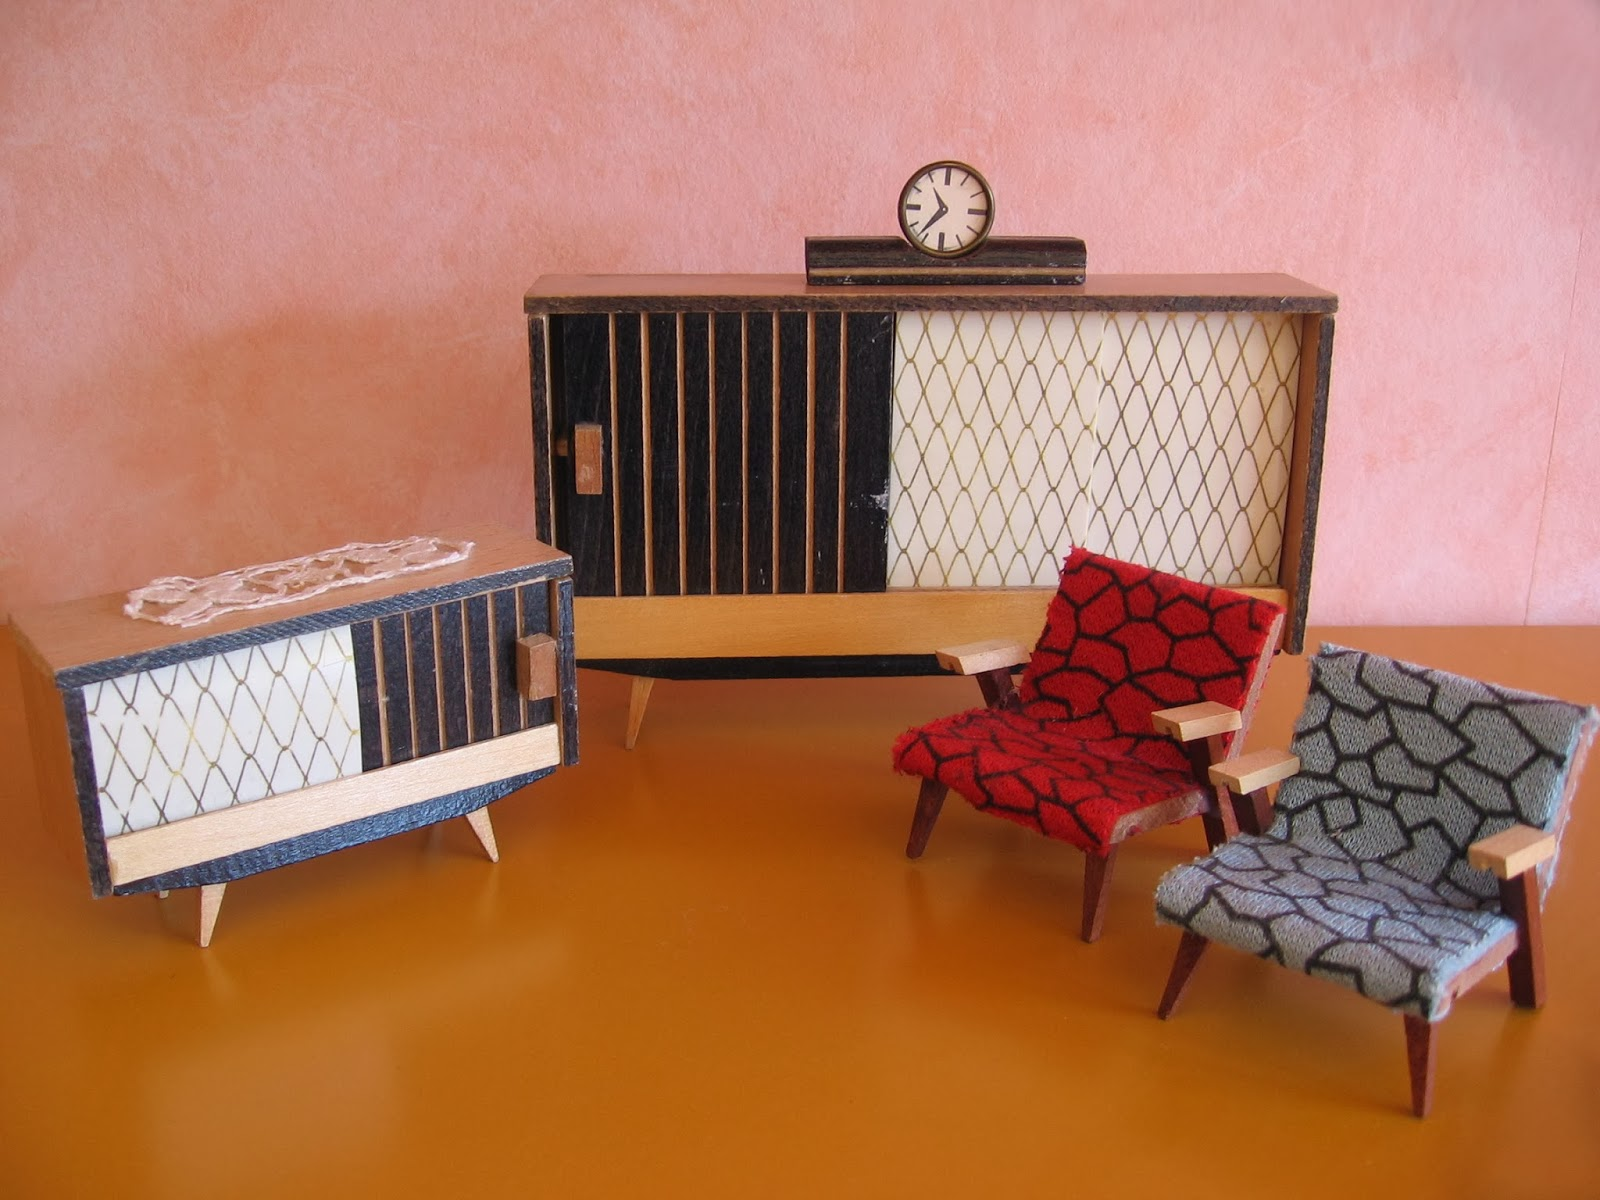 Dolls House Furniture Of Ullrich And Hoffmann